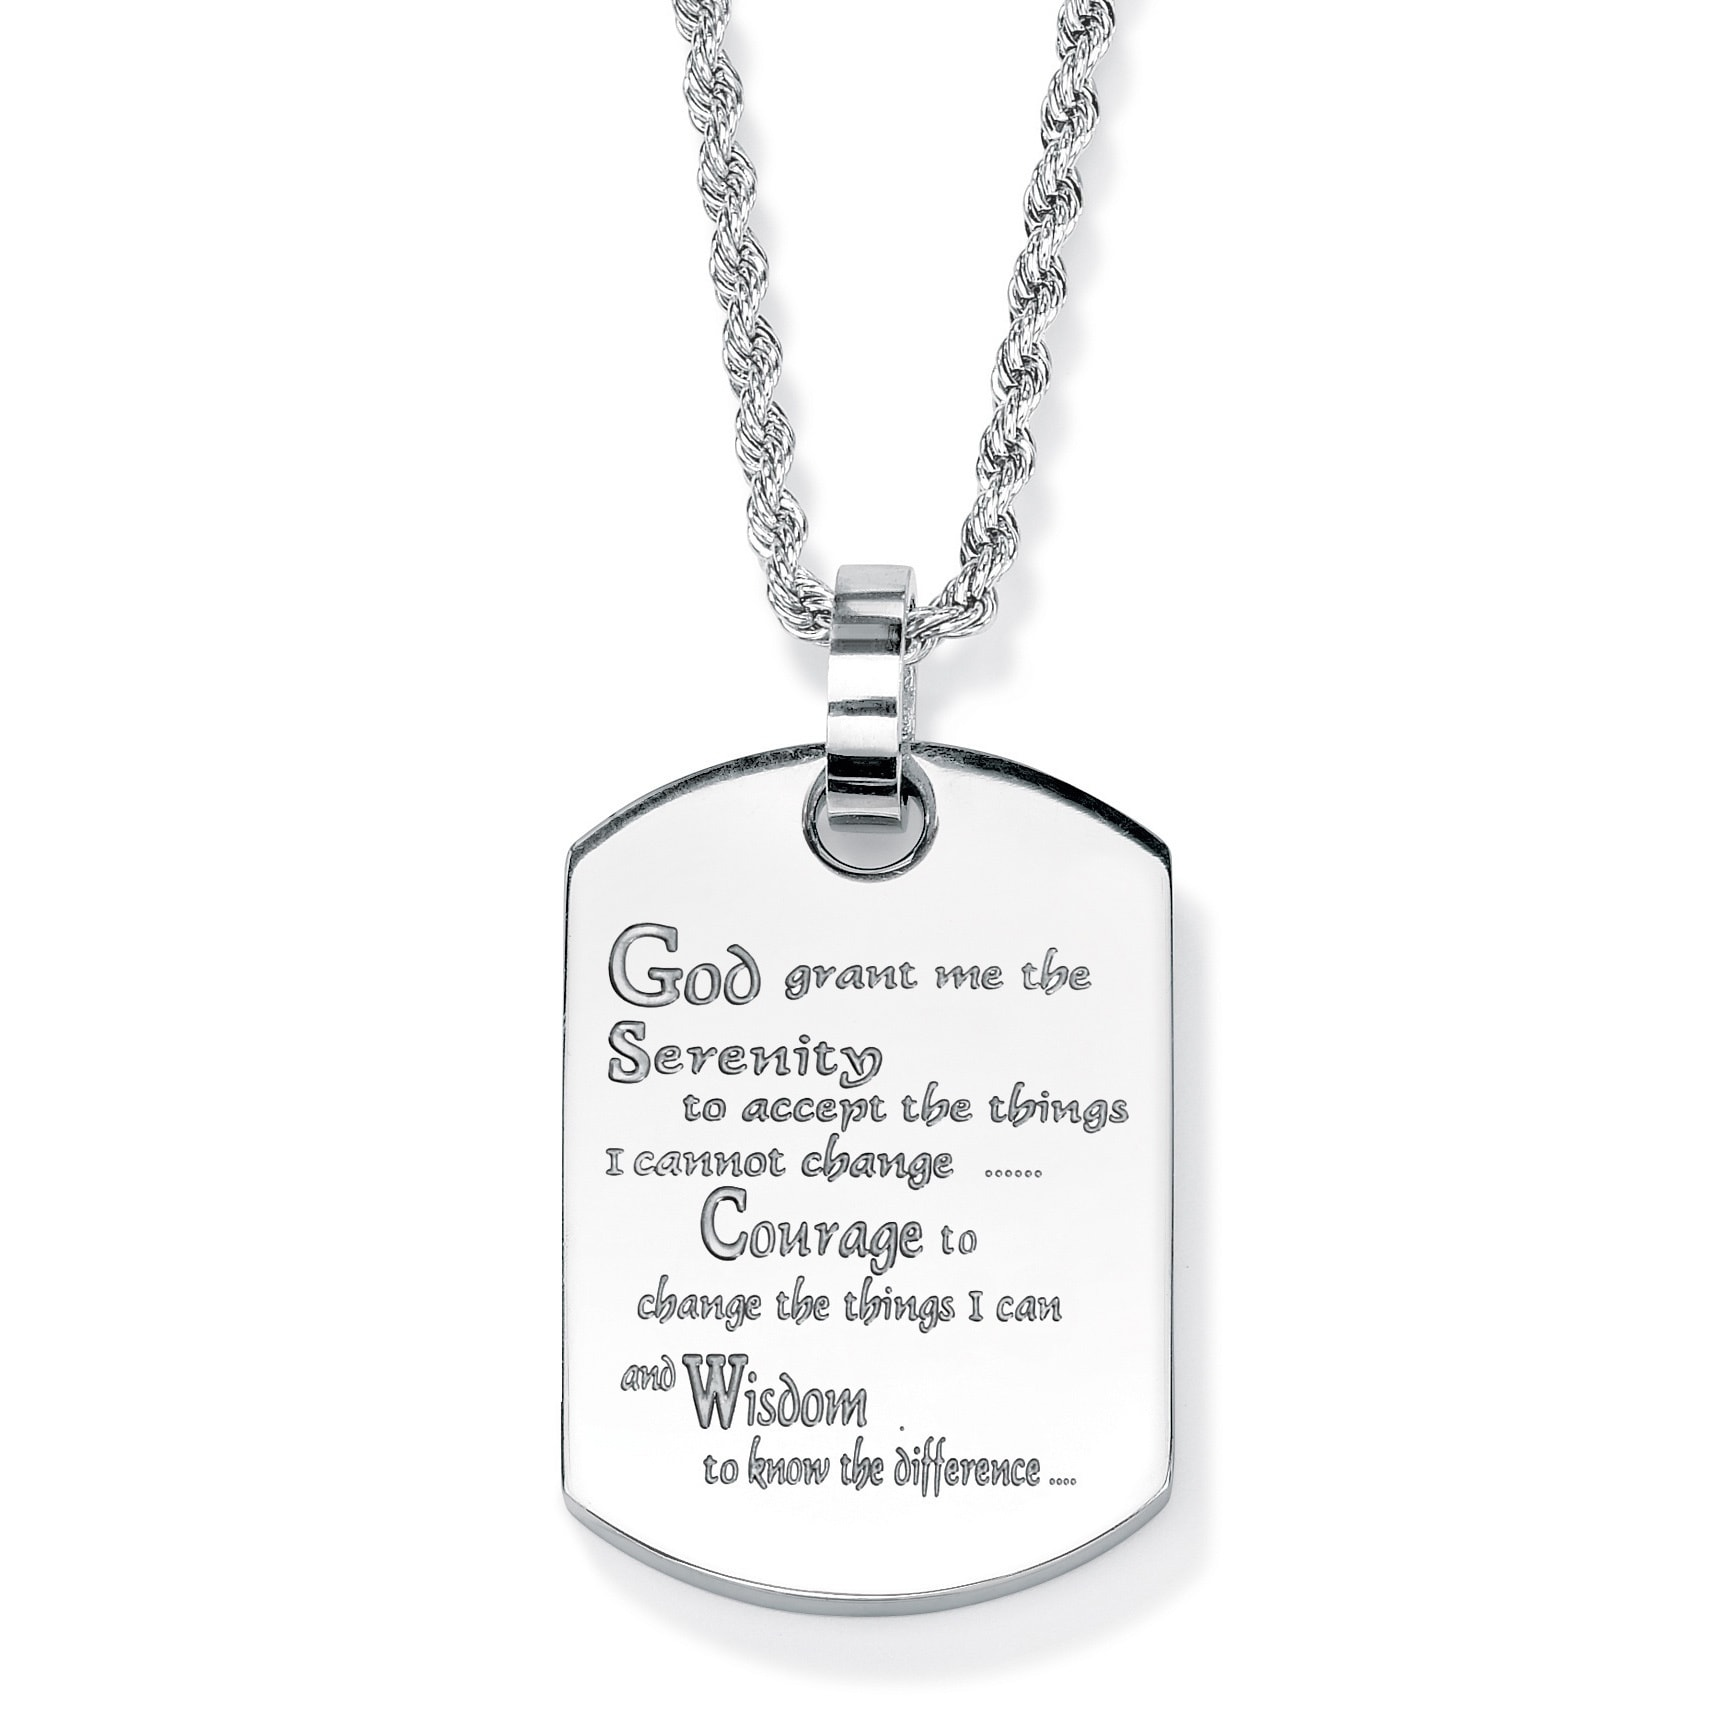 com ip prayer tag serenity in steel necklace walmart stainless dog